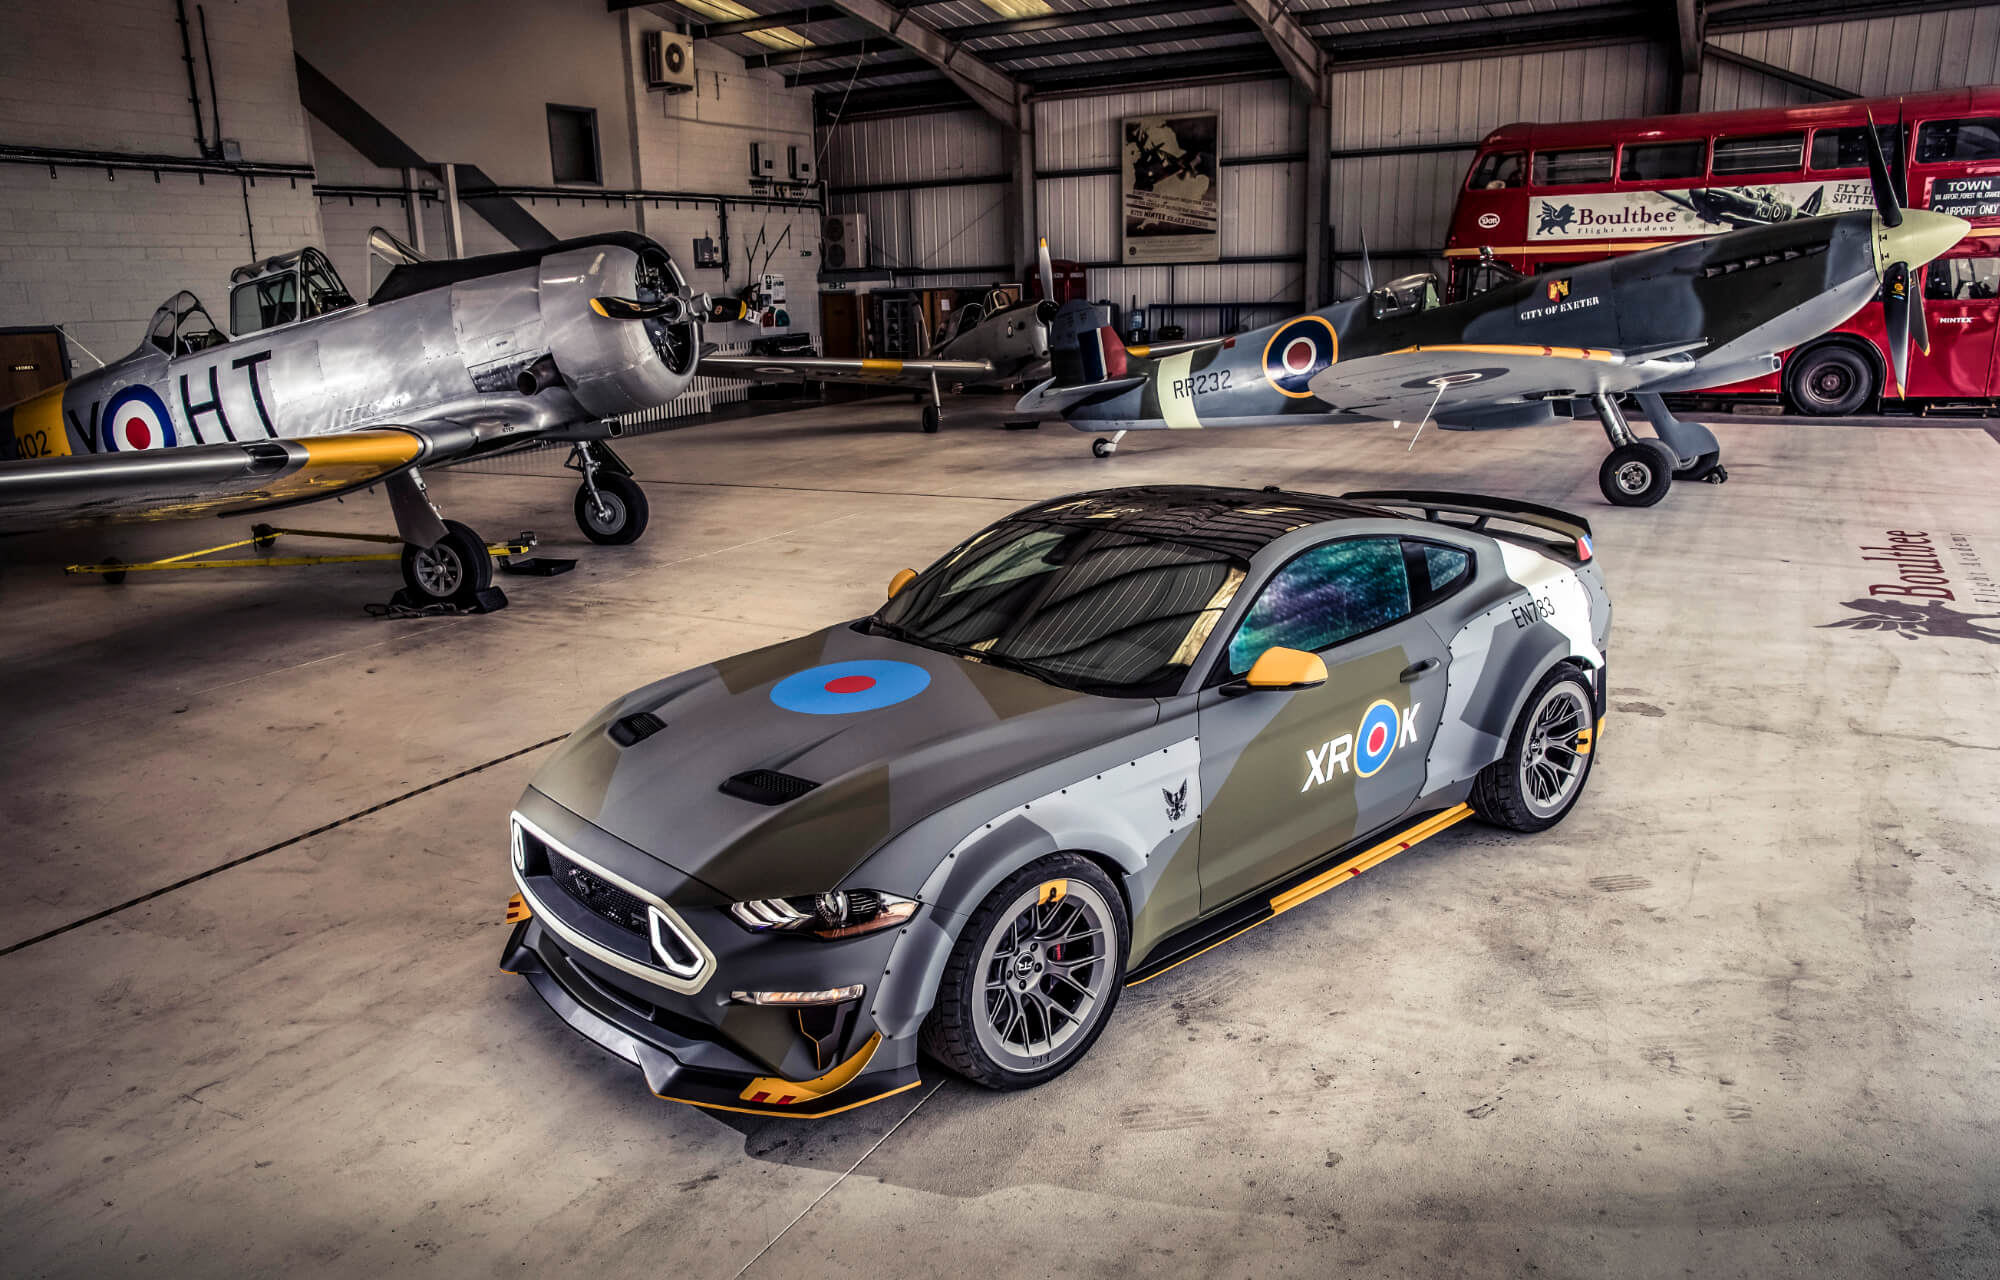 Eagle Squadron Mustang GT at Goodwood Festival of Speed 2018